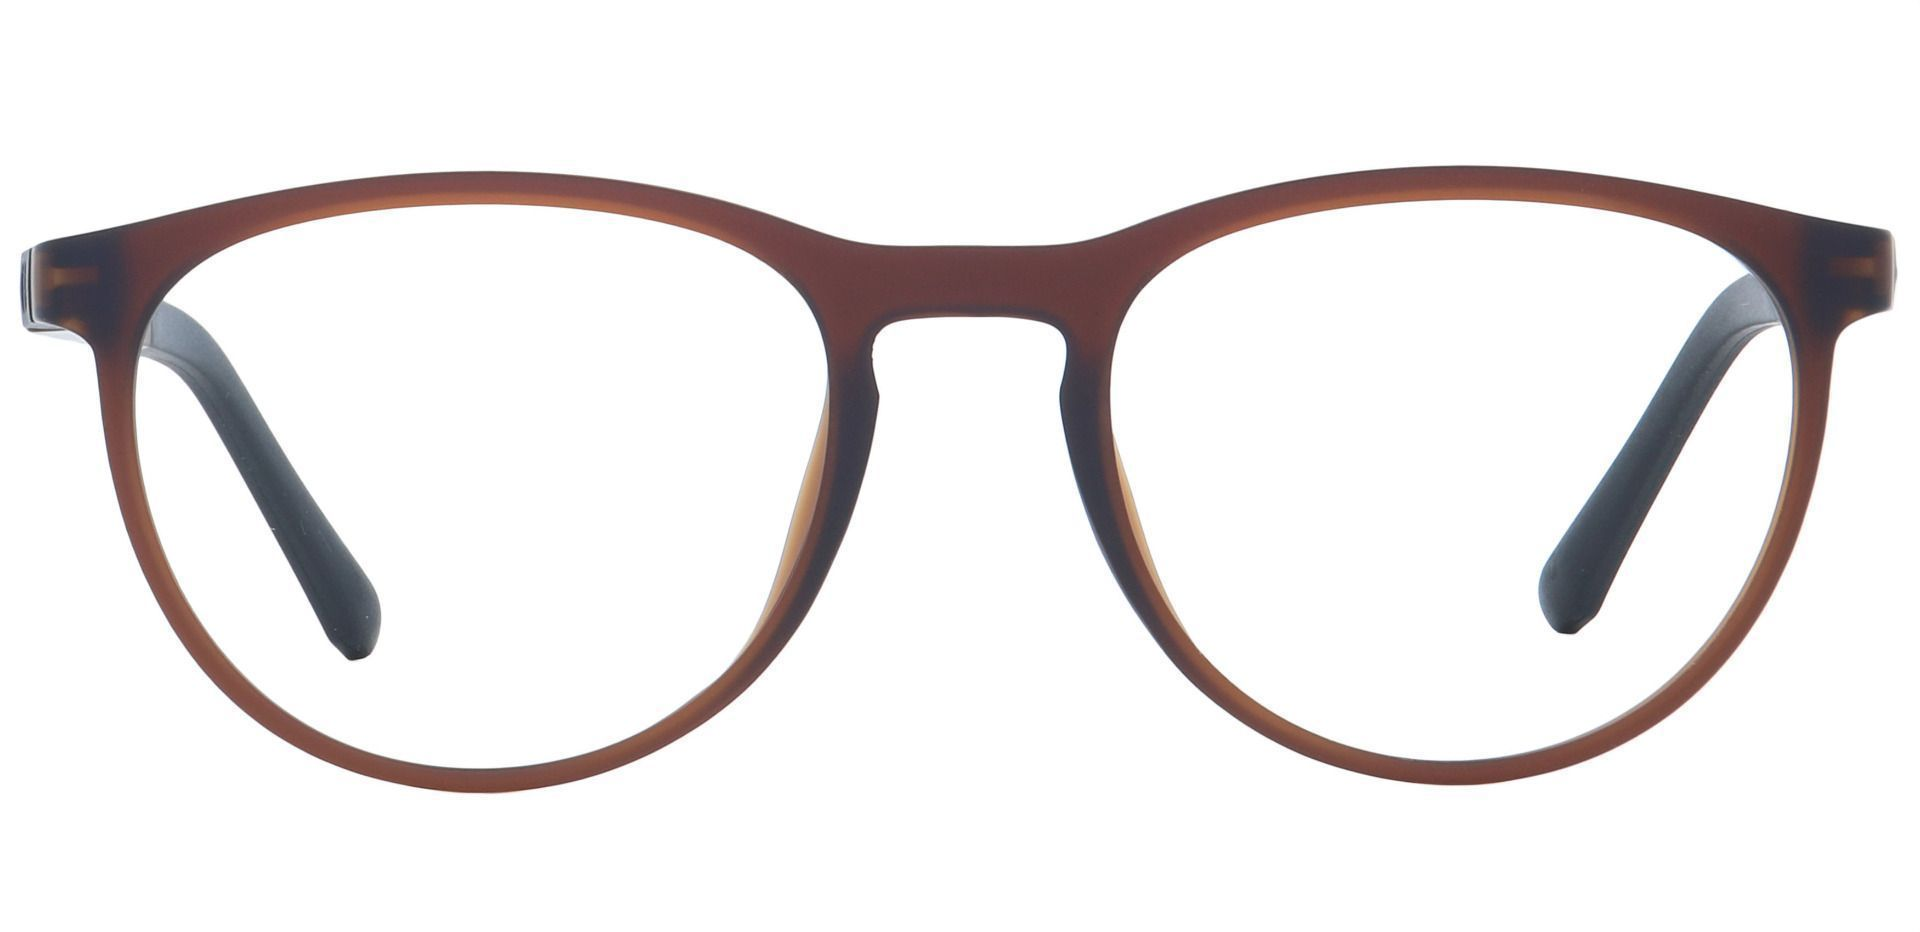 Heidi Round Blue Light Blocking Glasses - Matte Rootbeer